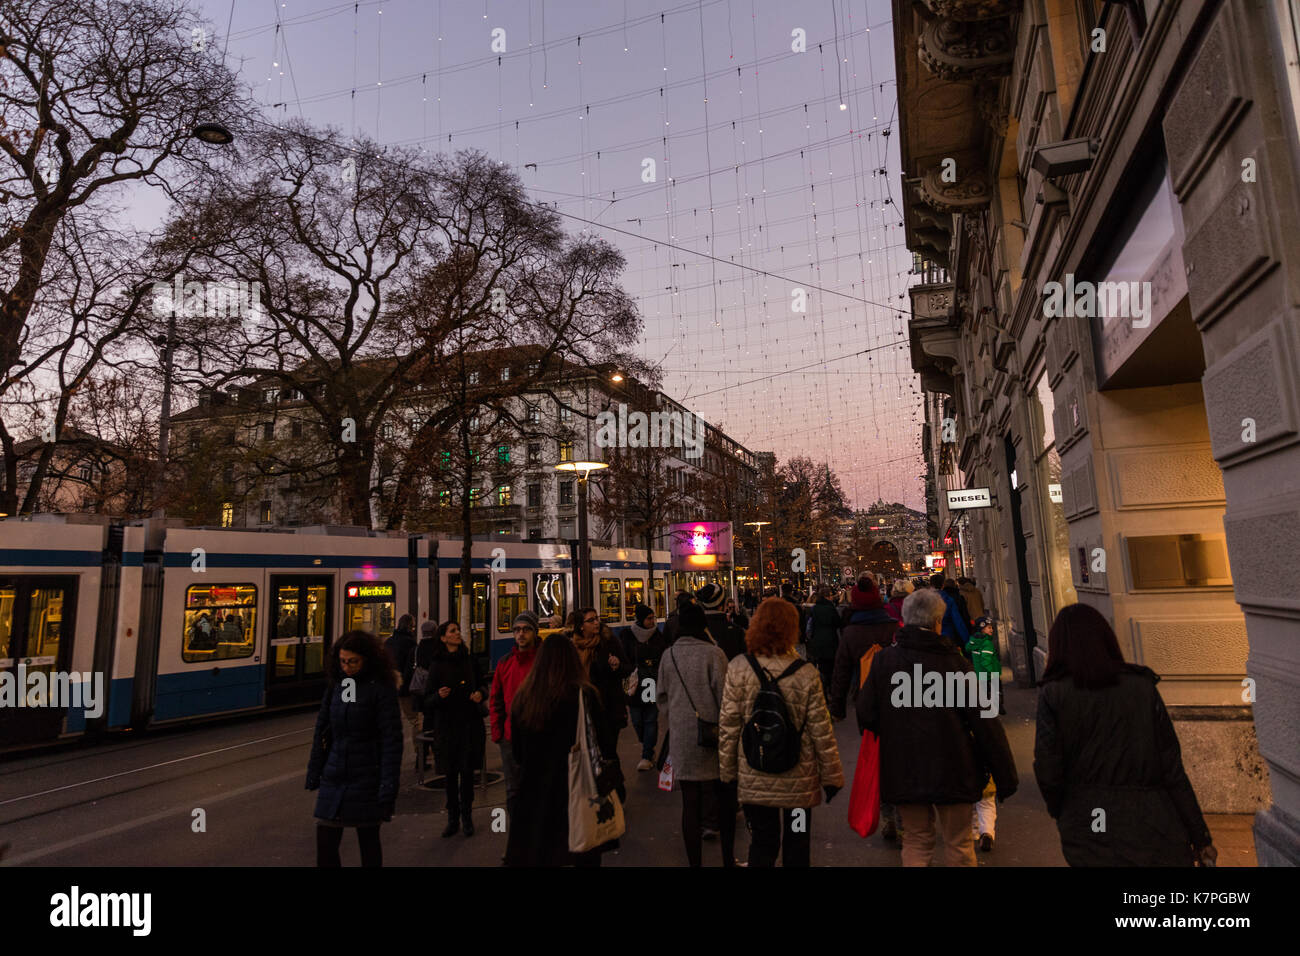 Zurich, Switzerland - 10 december 2016: Zurich Christmas Market - Stock Image